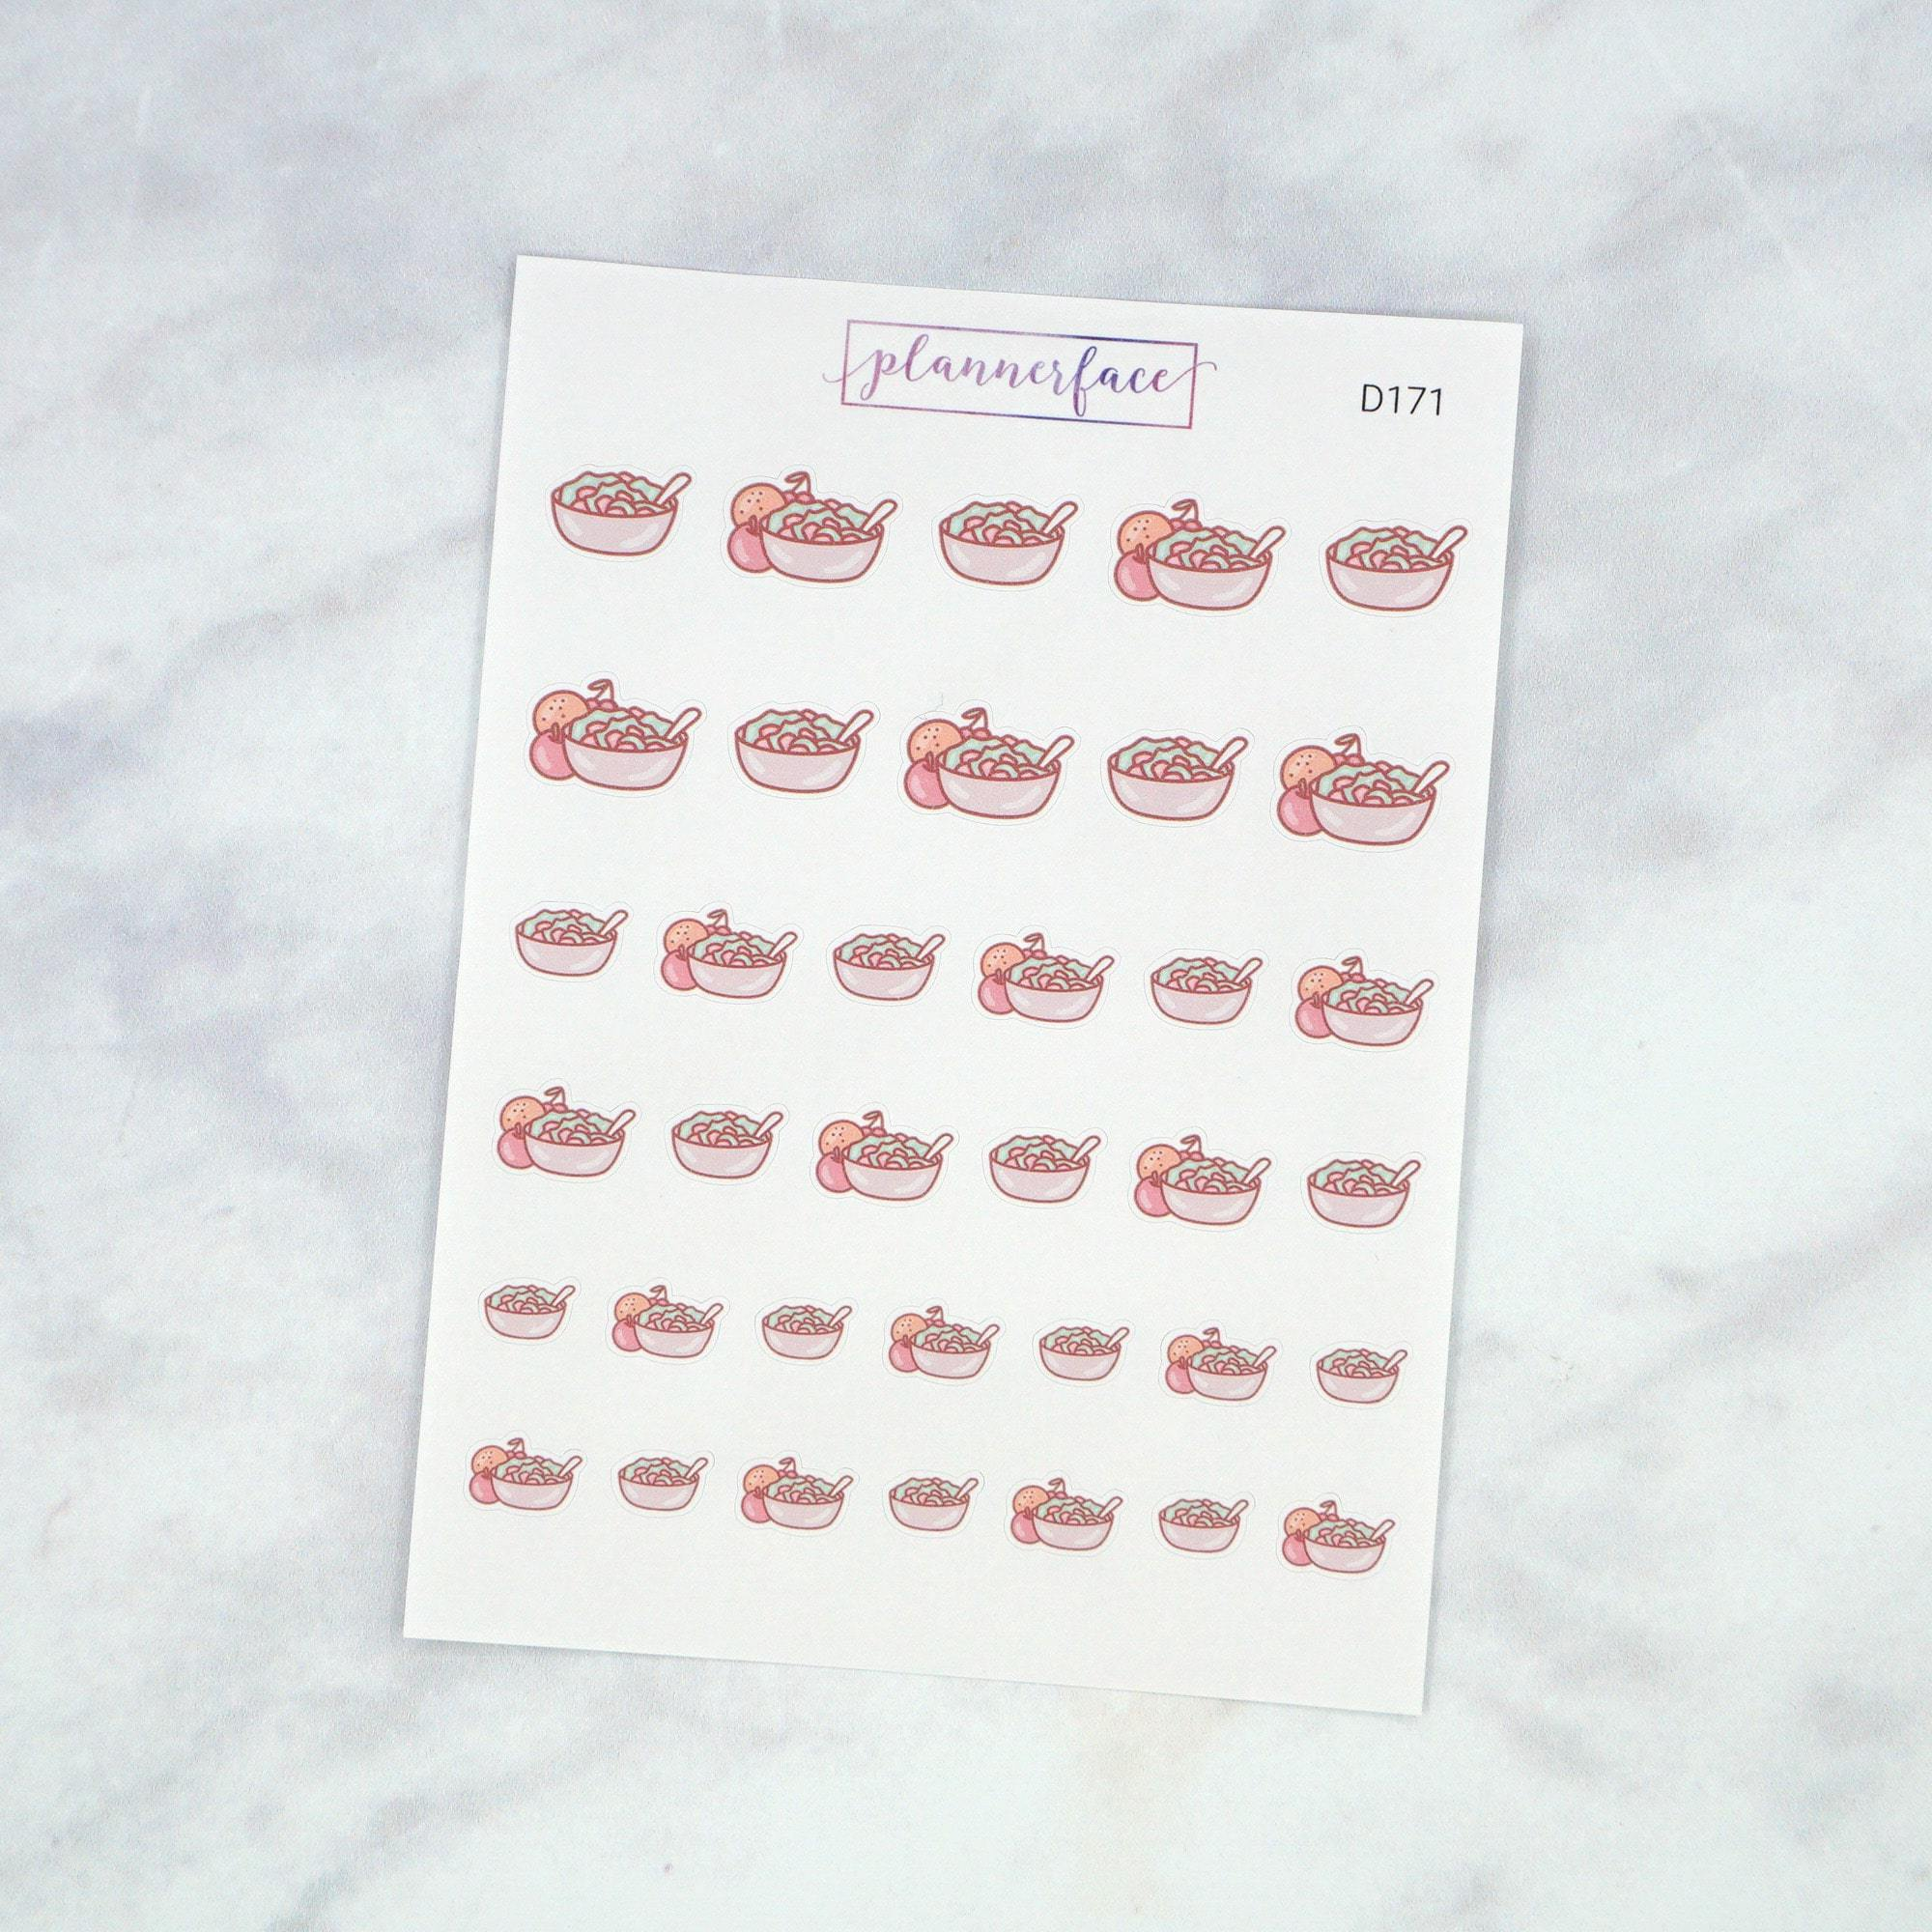 Plannerface Healthy Salad Doodles Planner Stickers